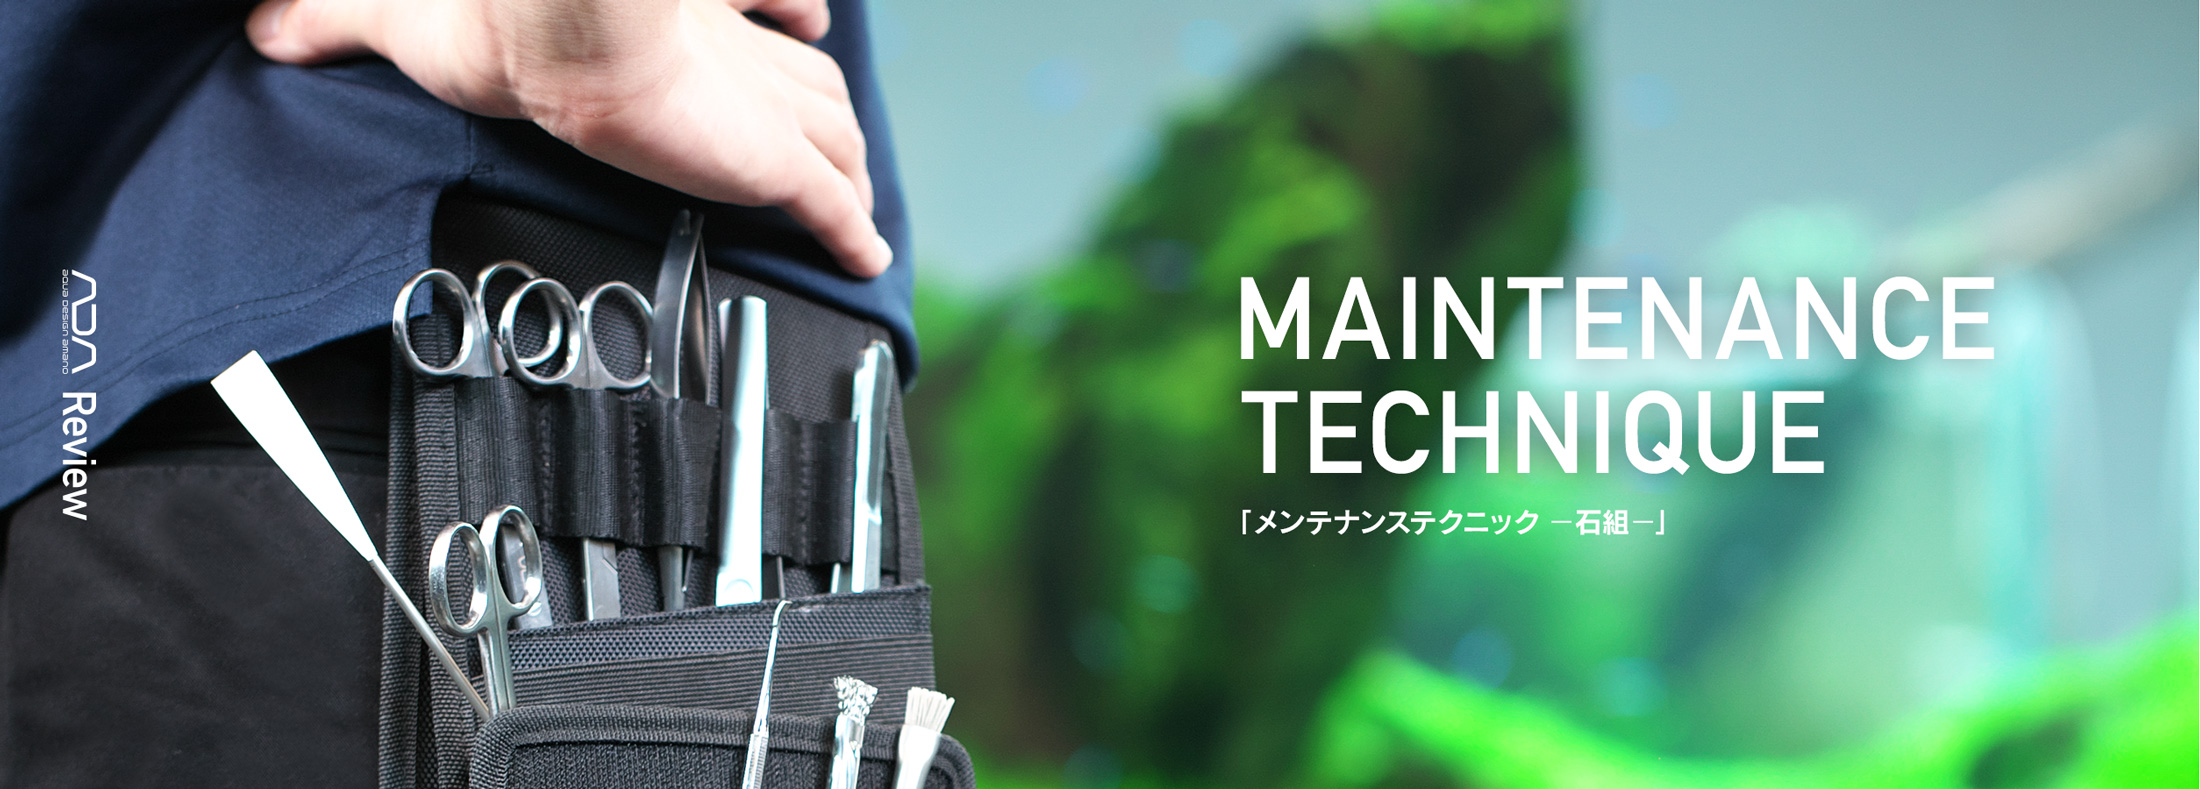 ADA Review 「メンテナンステクニックー石組ー」